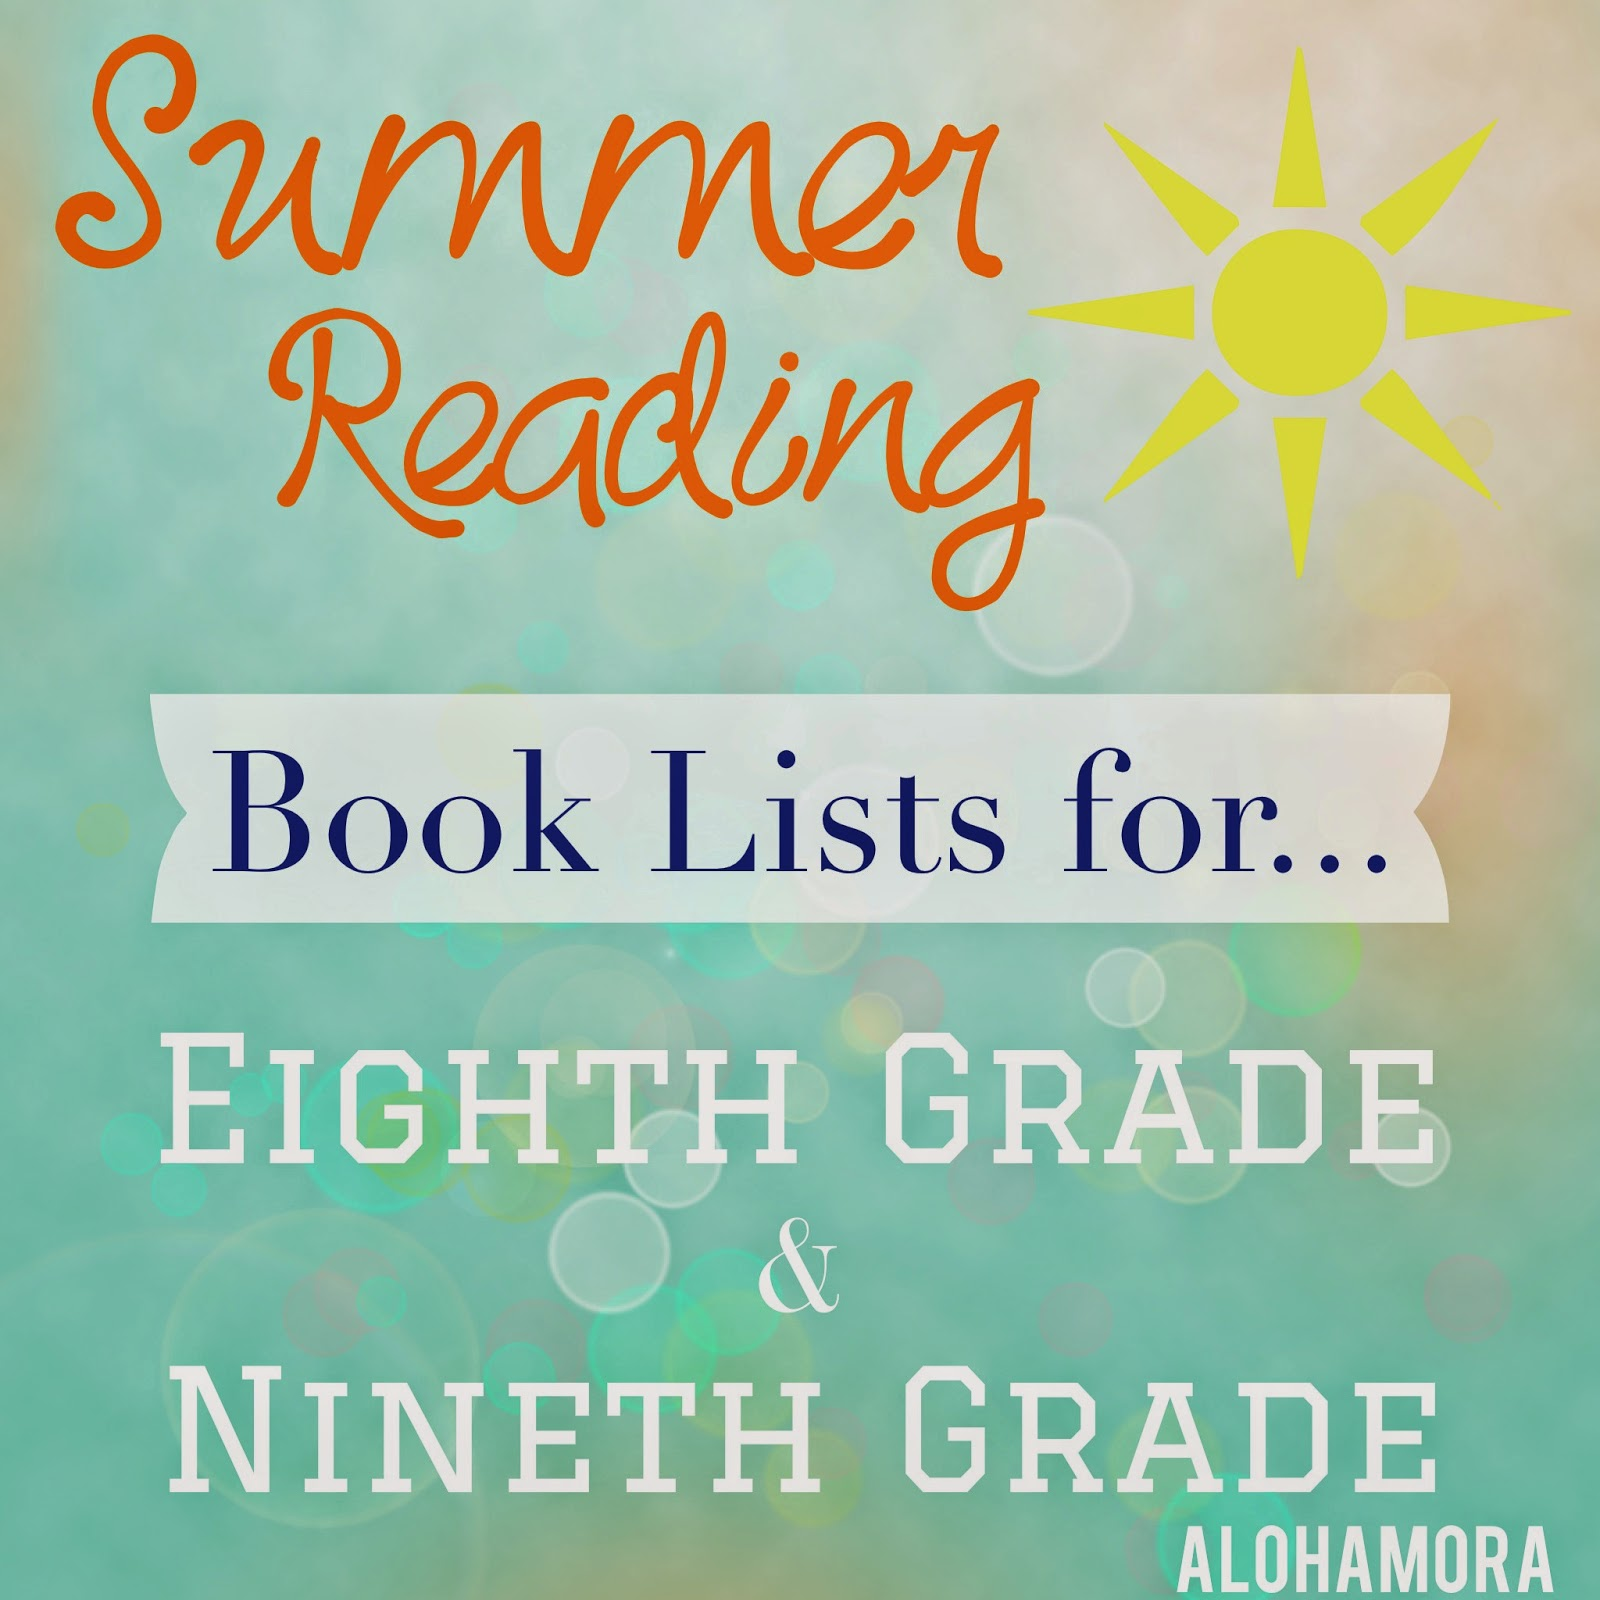 Summer Reading Book Lists for Kids Going Into.. Eighth (8th) and Ninth (9th) Grade.  Teens, reluctant readers, parents, teachers, and everyone will love these books. Alohamora Open a Book http://alohamoraopenabook.blogspot.com/